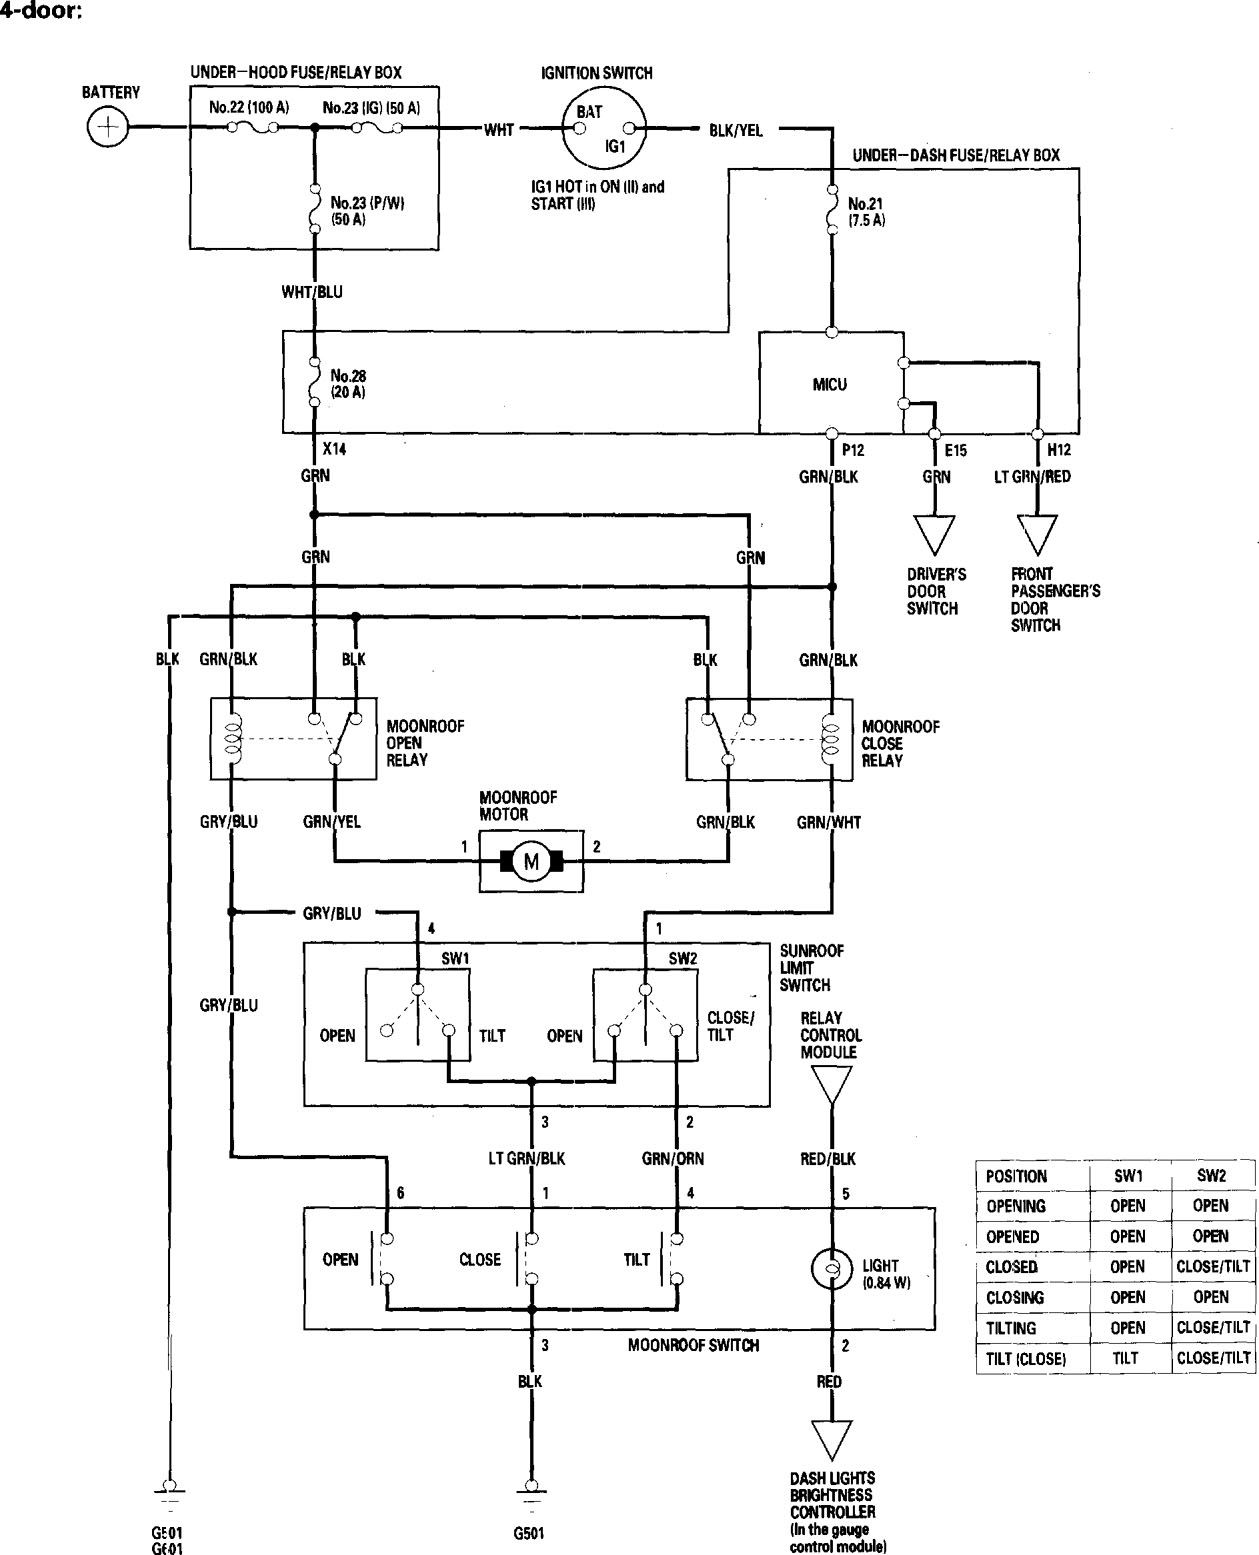 Honda Accord (2006) - wiring diagrams - sunroof - CARKNOWLEDGE